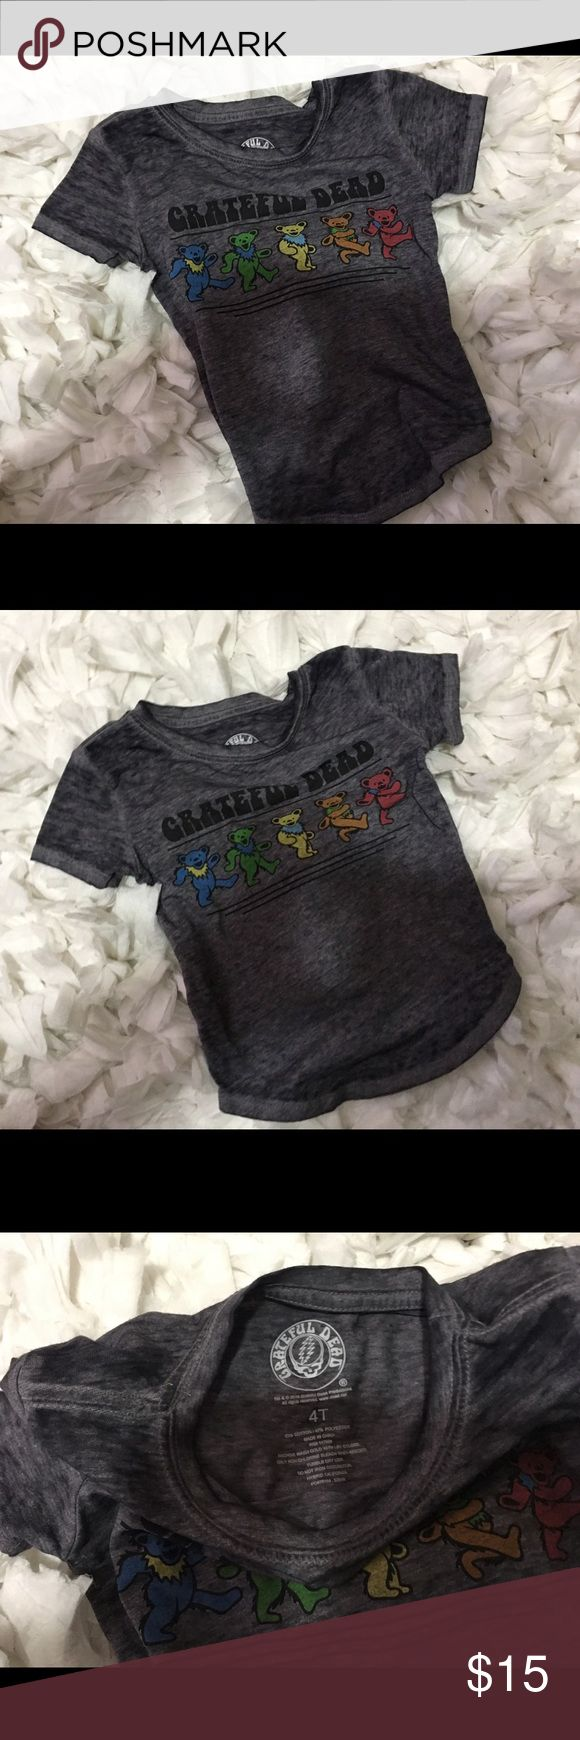 Baby kids Grateful Dead concert tee Like new, worn once!!!  4/4T.  Boy or girl. grateful dead Shirts & Tops Tees - Short Sleeve